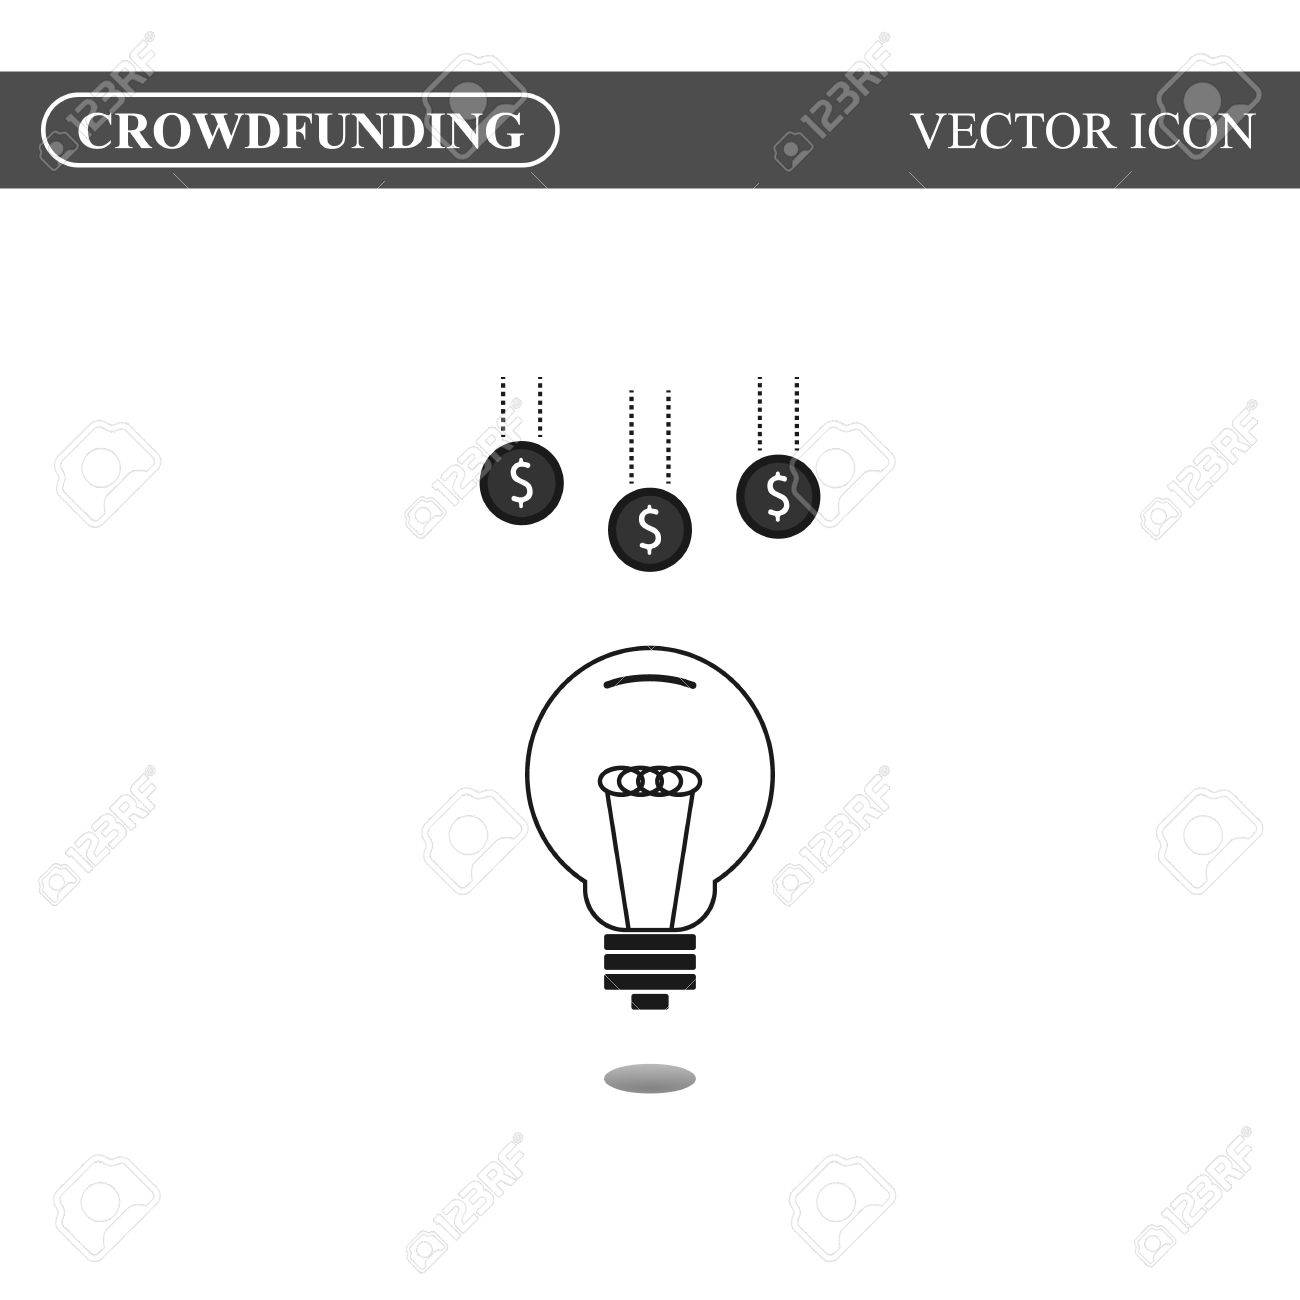 crowdfunding icon on white background crowdsourcing icon concept